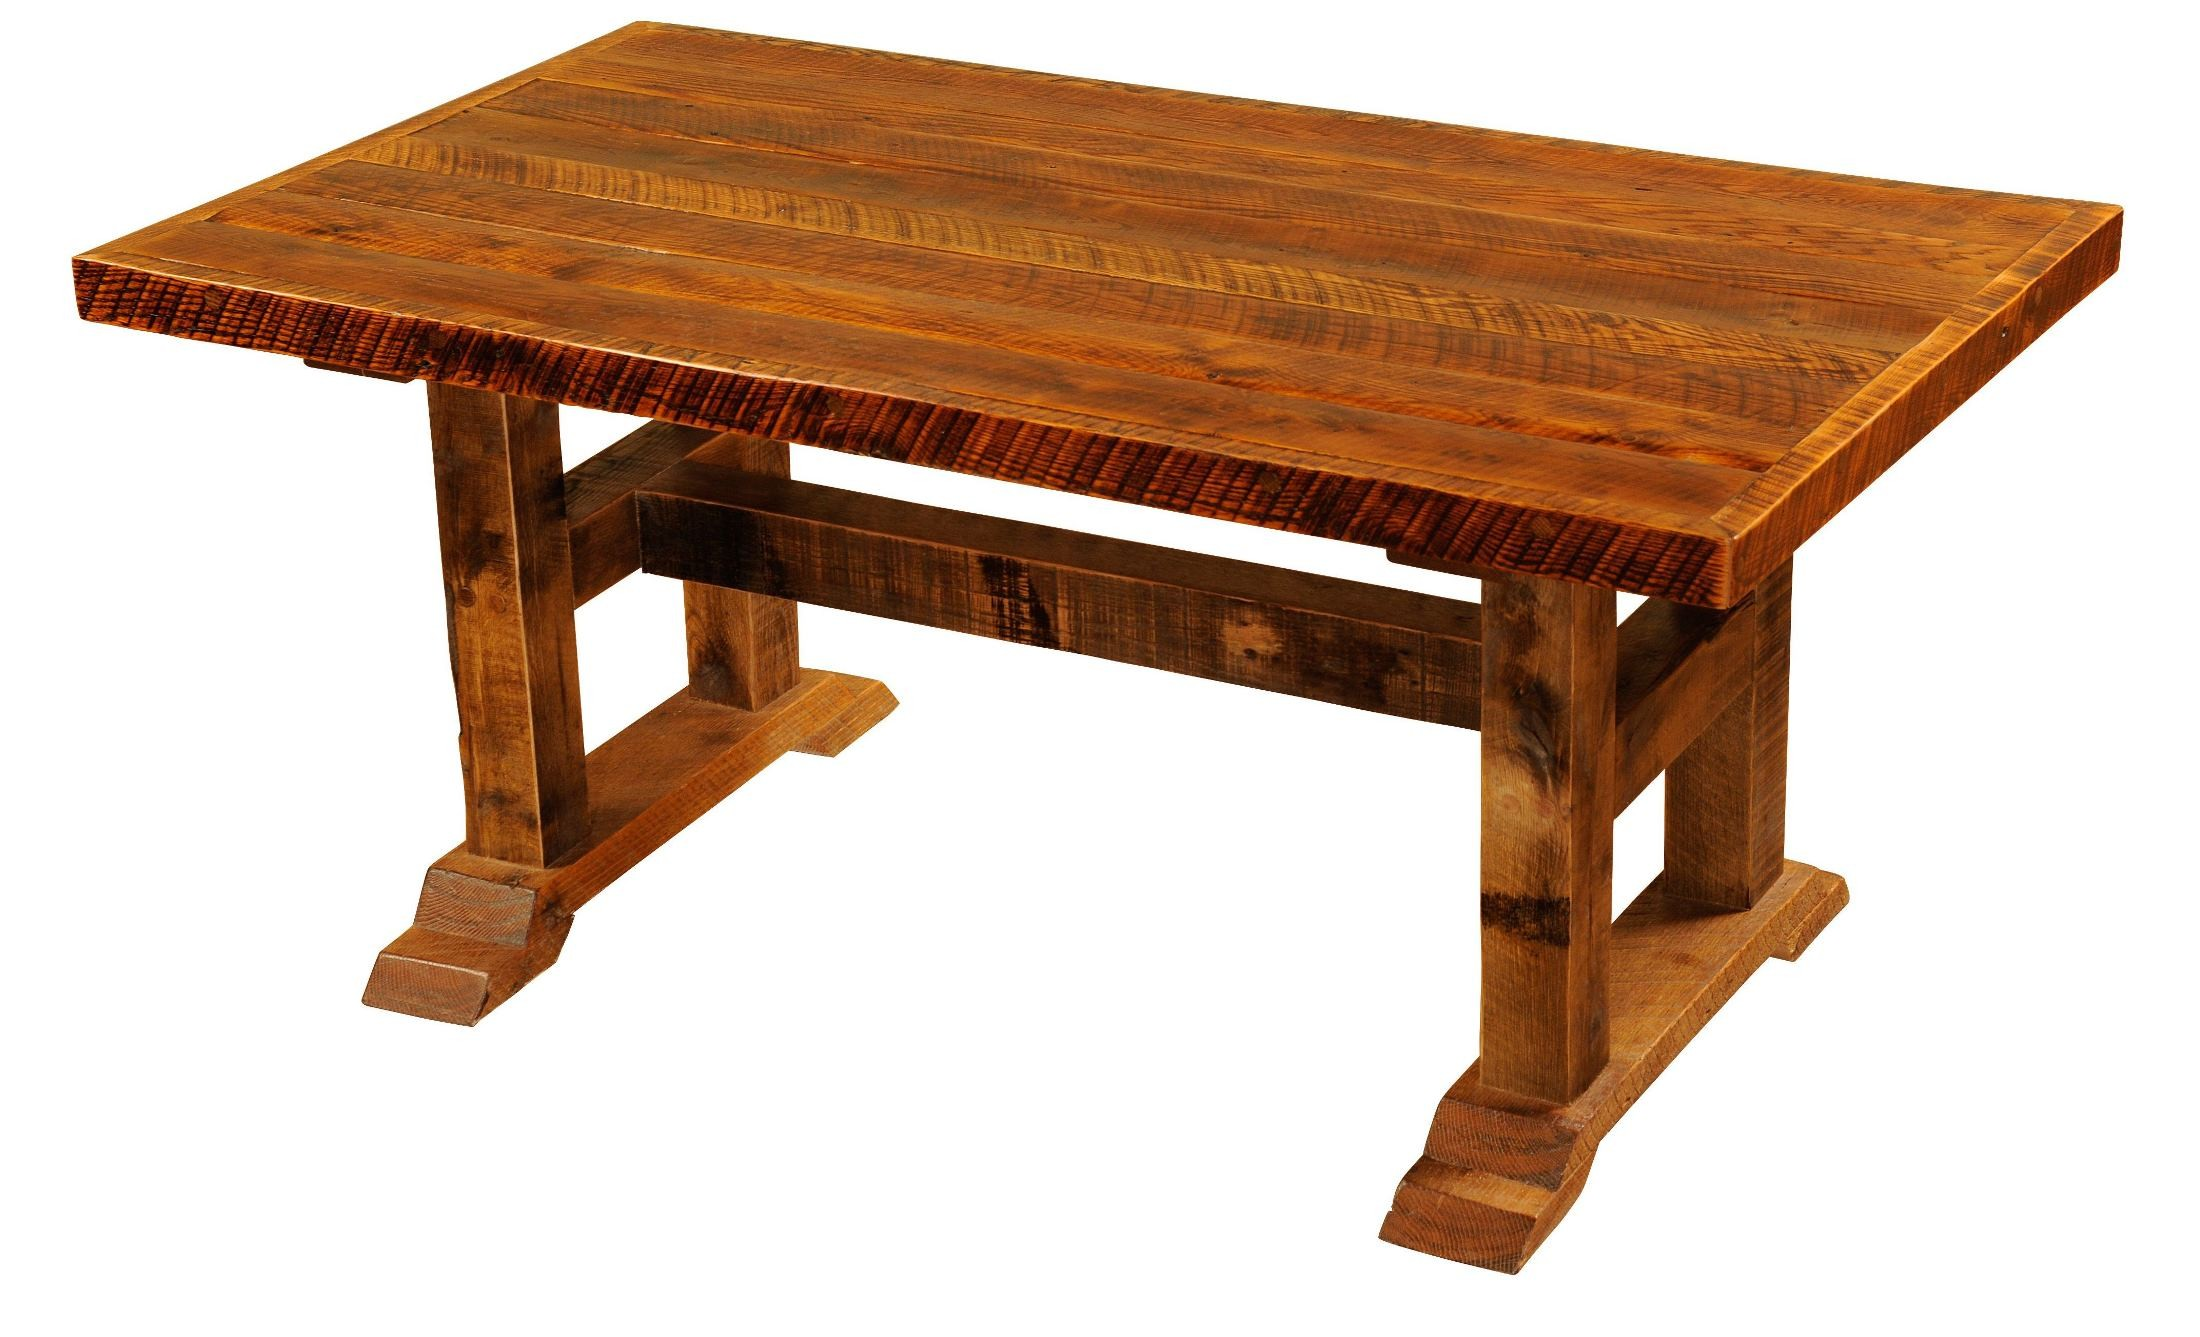 barnwood timbers 60 artison top rectangular dining table from